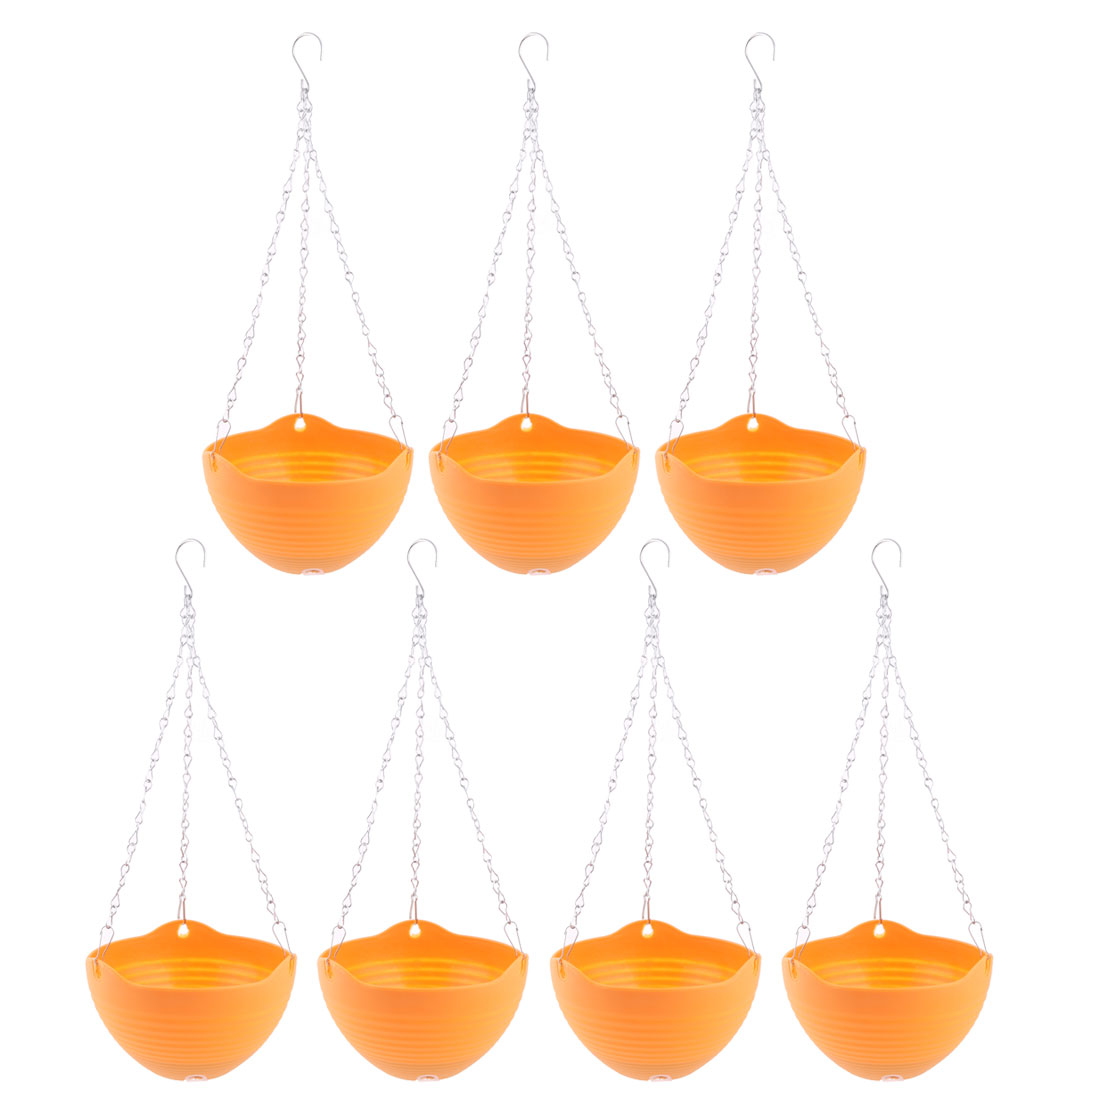 Balcony Plastic Chain Hanging Plant Flower Pot Holder Container Orange 7 Pcs